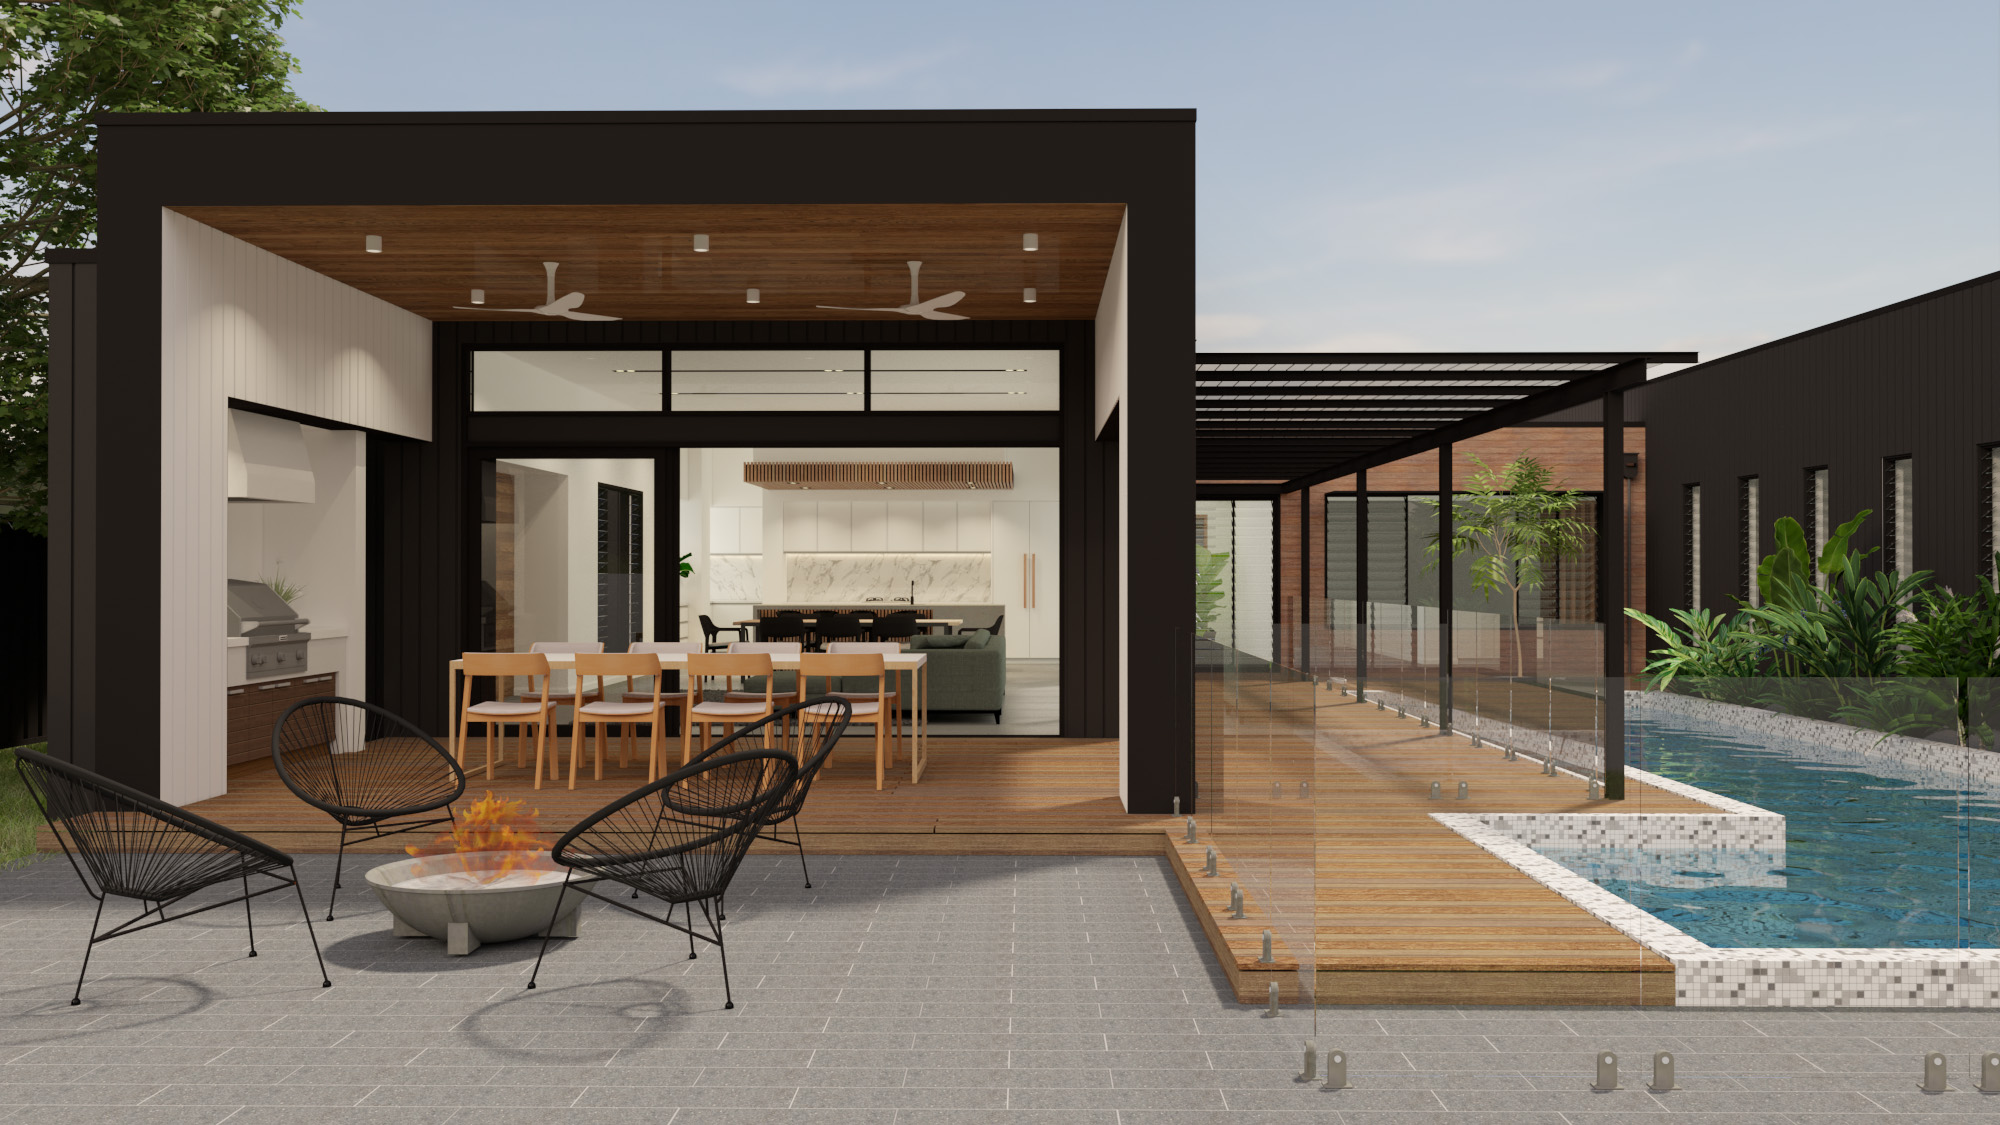 Courtyard House with central pool